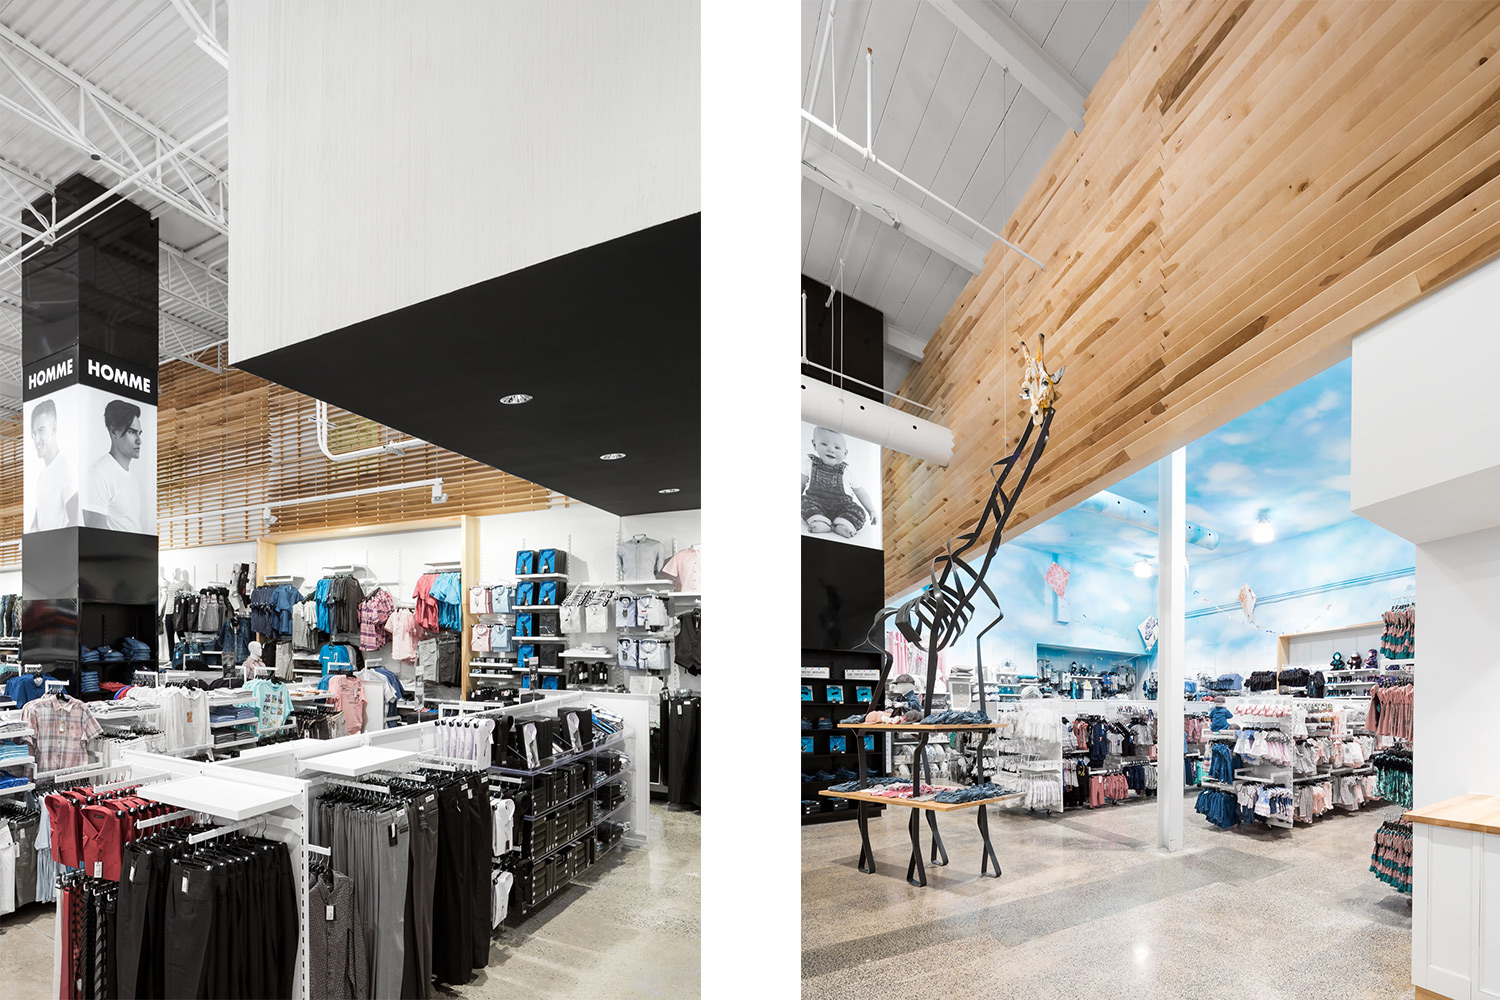 Garment shop with polished concrete floor. Full height black signage column. Wall of wooden slats. Ceiling of the baby zone effect sky painted in blue with cloud.